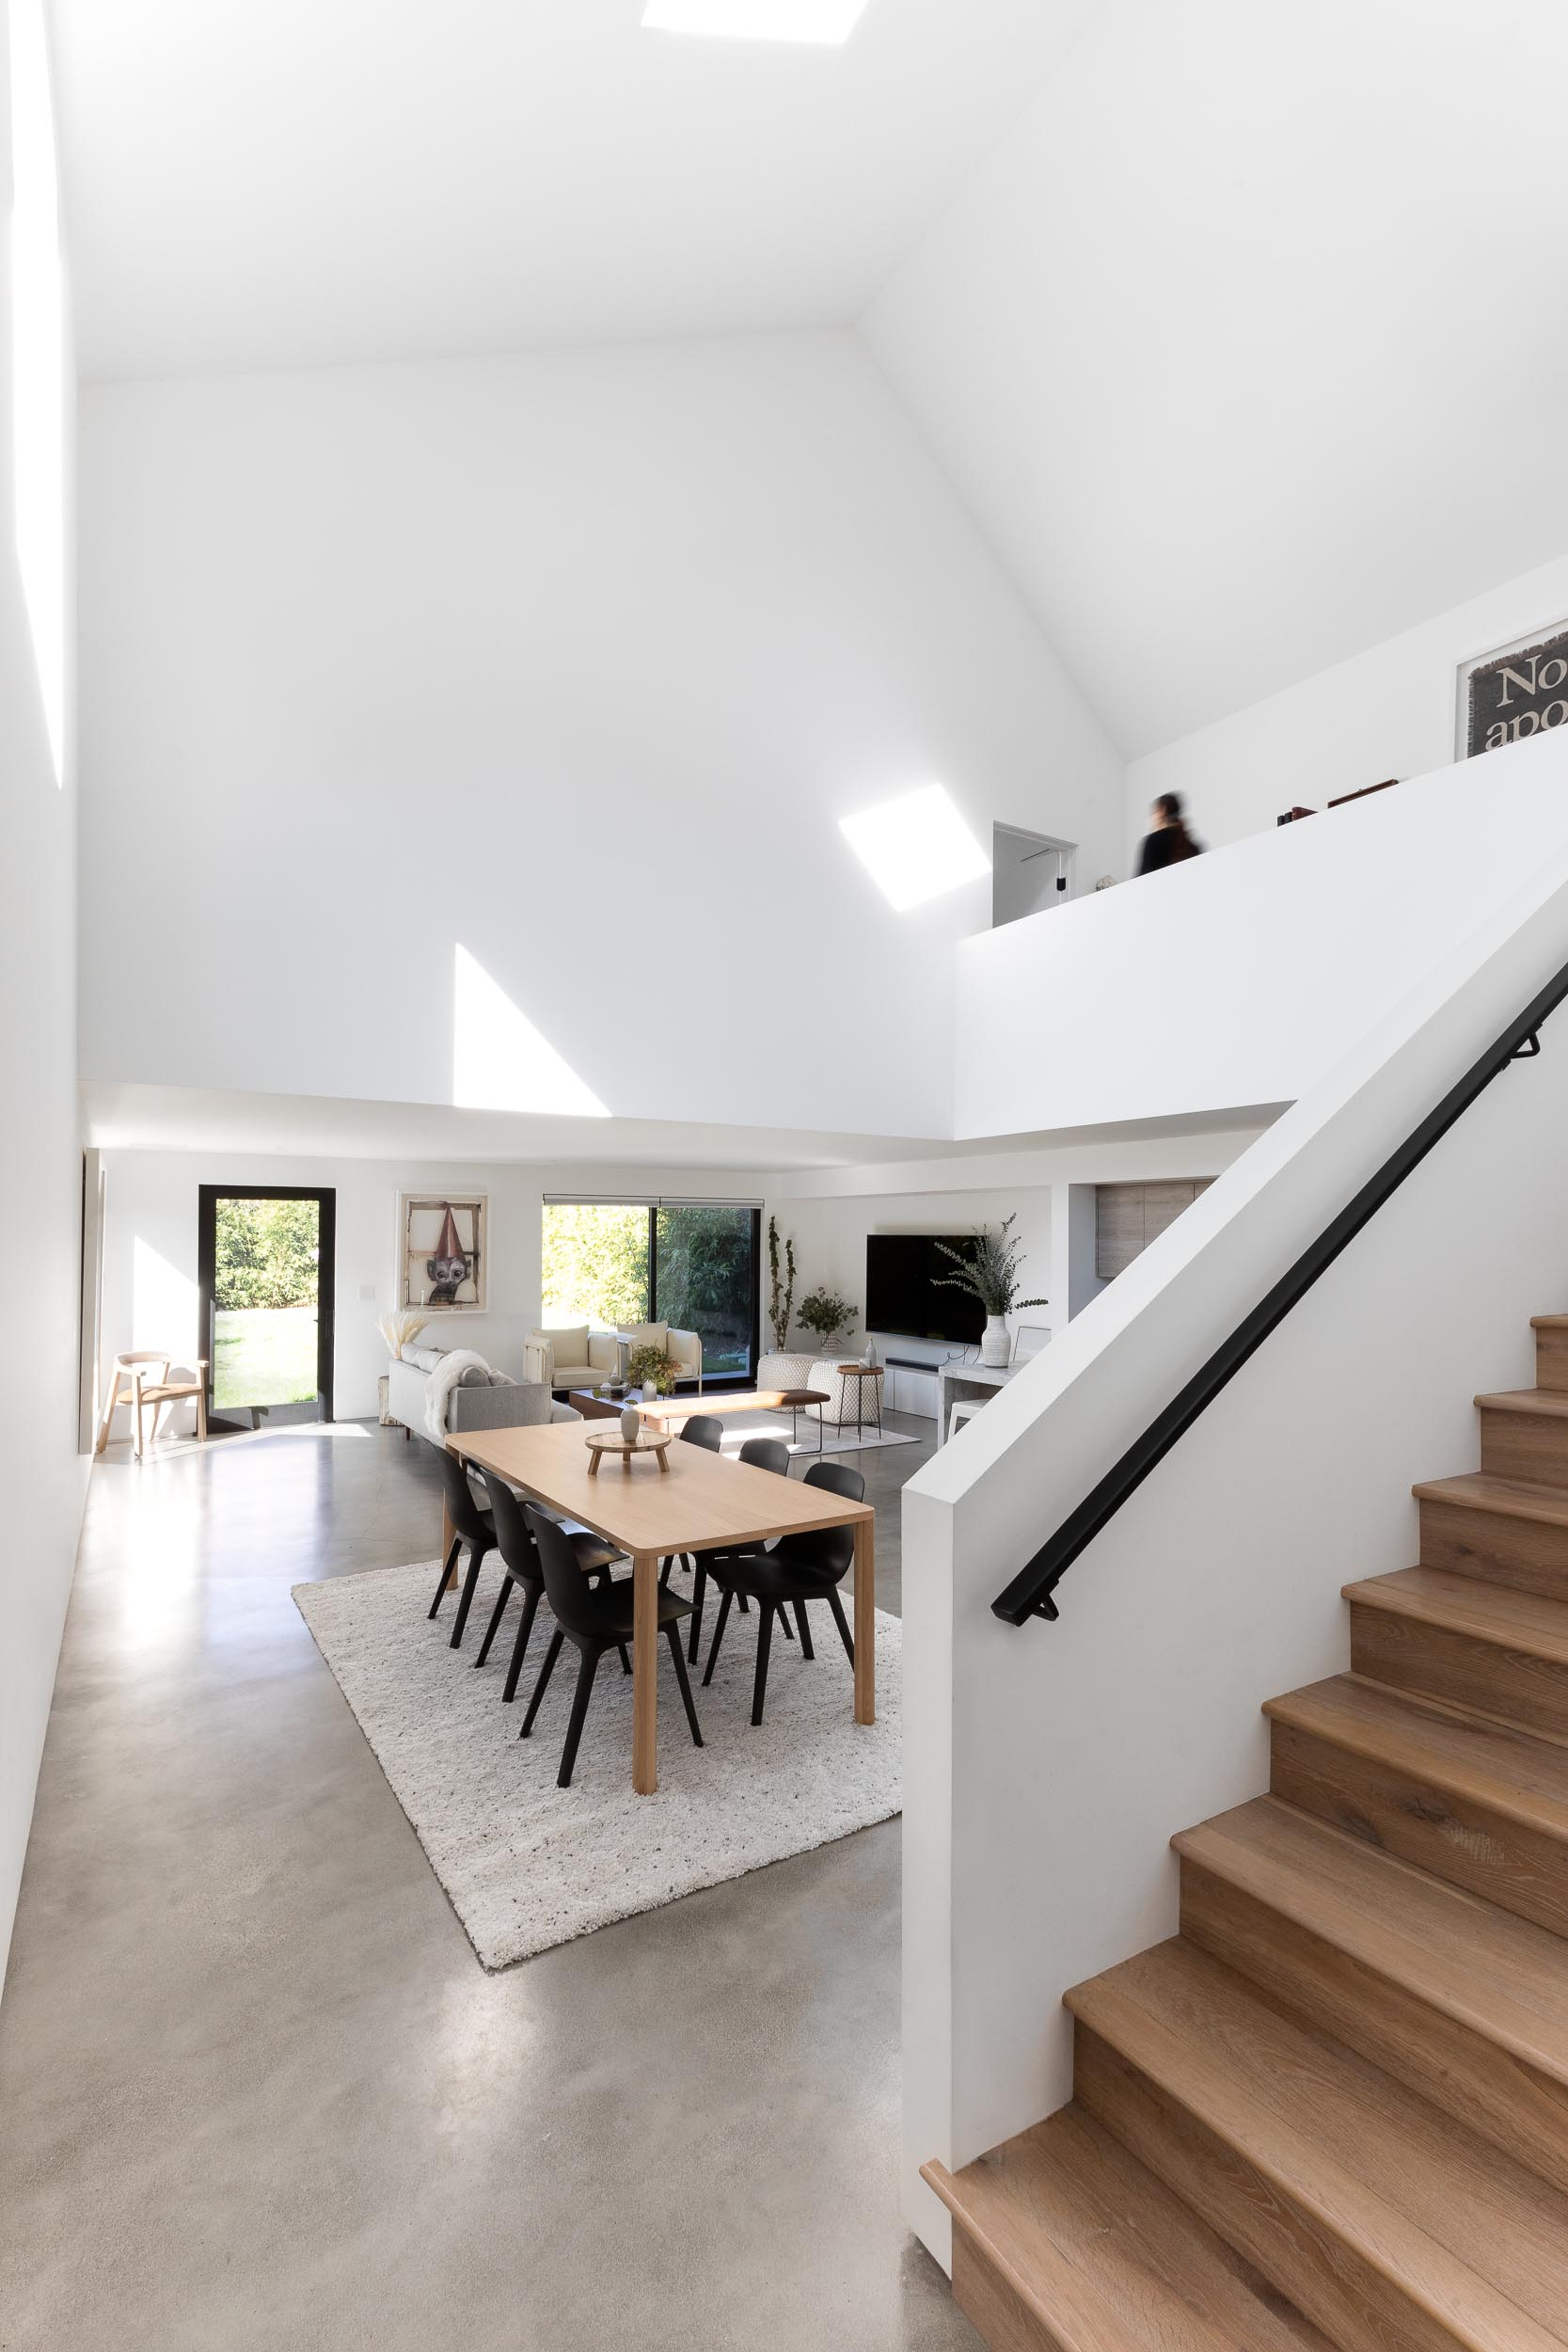 Inside this modern home, there's an open floor plan with the living room, dining room, and kitchen all sharing the same space. Also included are high ceilings, concrete floors, and bright white walls.